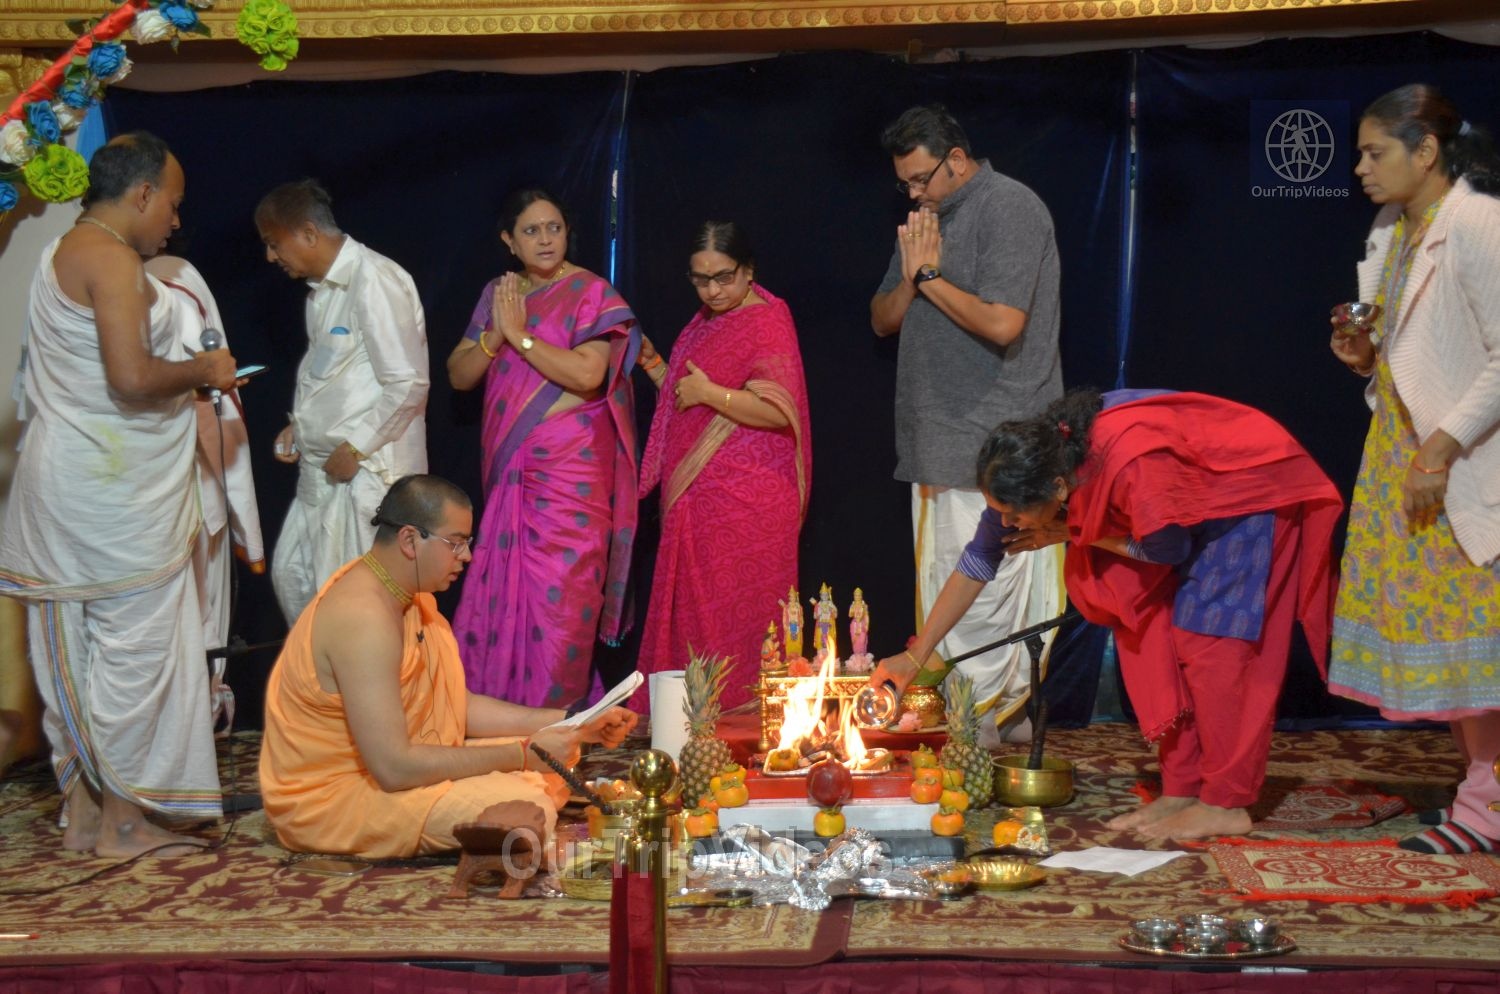 Diwali and Govardhan Puja Celebrations at KBMandir, Sunnyvale, CA, USA - Picture 13 of 25